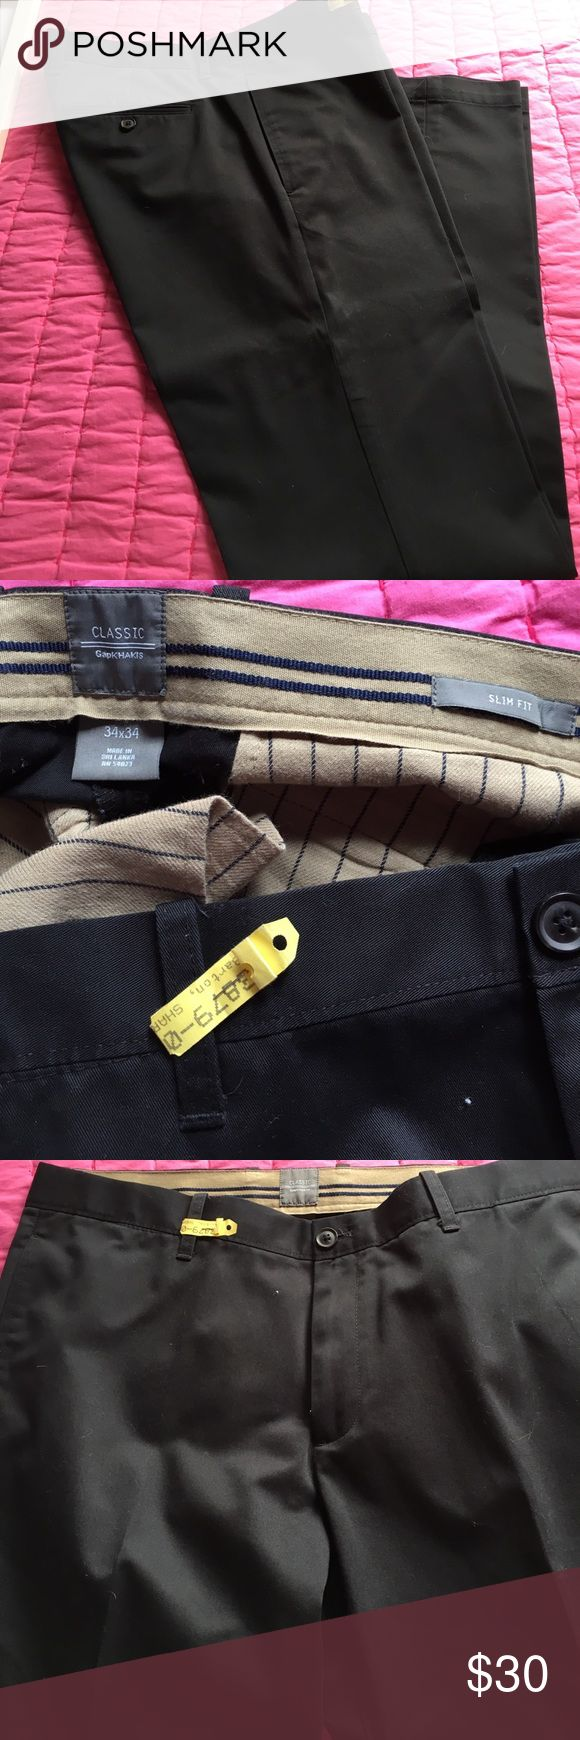 Gap men's khaki pants Gap men's  black flat front khaki pants . Size 34-34 slim fit .style Sj757376-01 E classic slim khaki chino black  v1204 .These pants have only been worn twice and are in excellent condition and dry cleaned . GAP Pants Chinos & Khakis